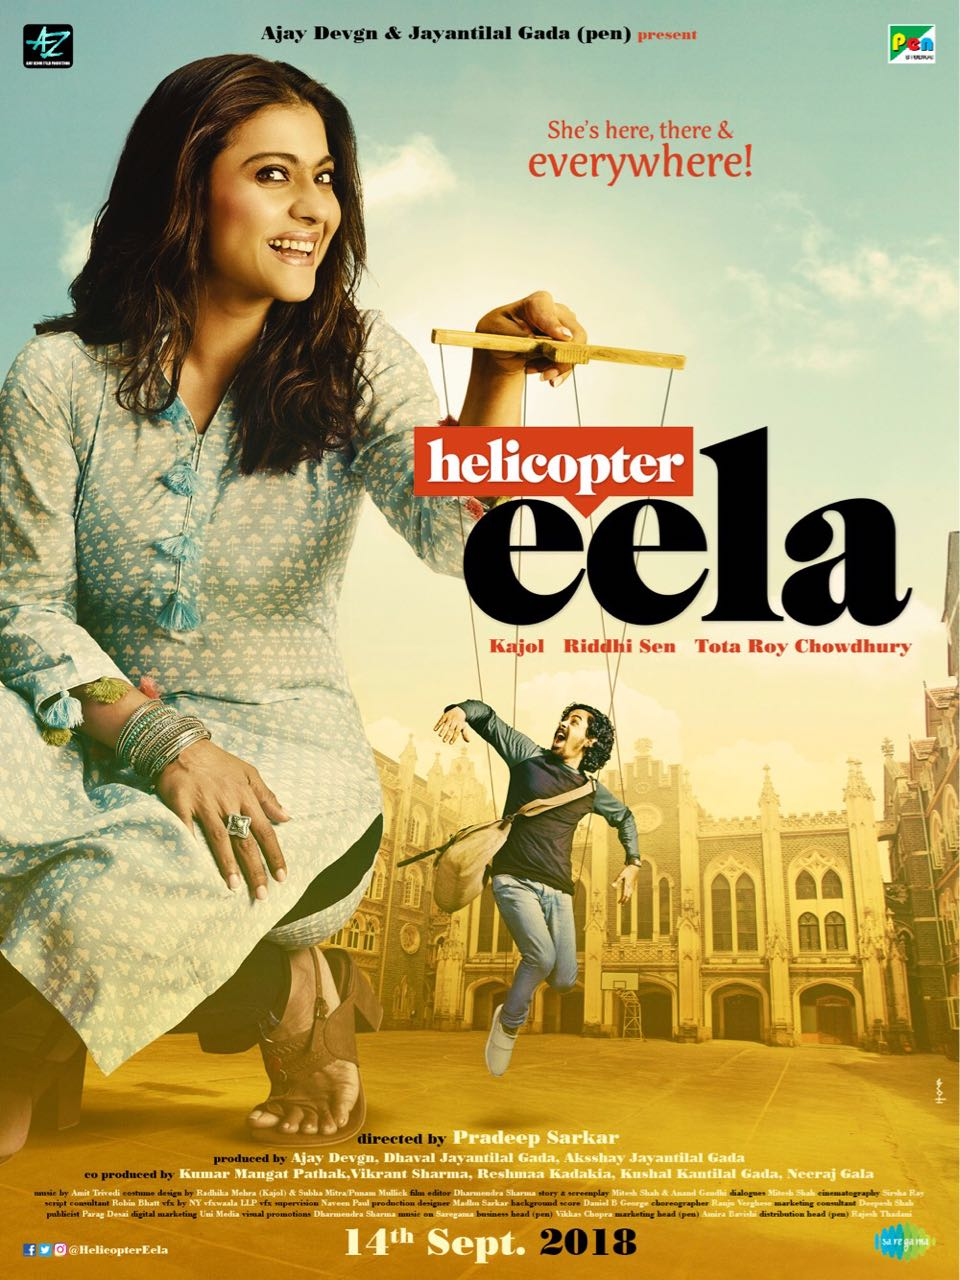 helicopter-eela-poster